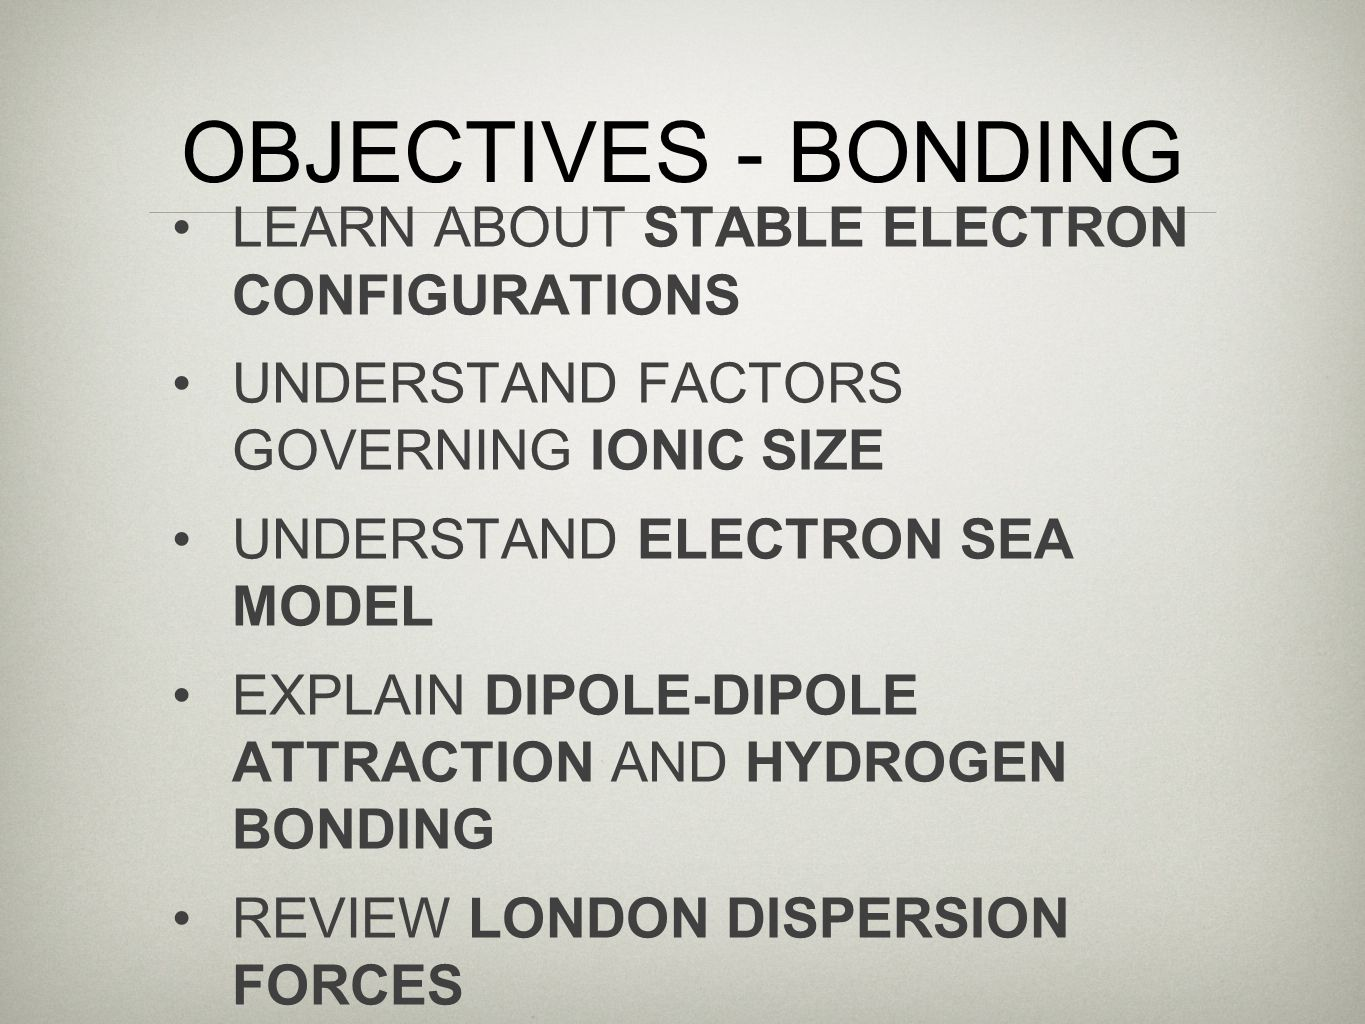 OBJECTIVES - BONDING LEARN ABOUT STABLE ELECTRON CONFIGURATIONS